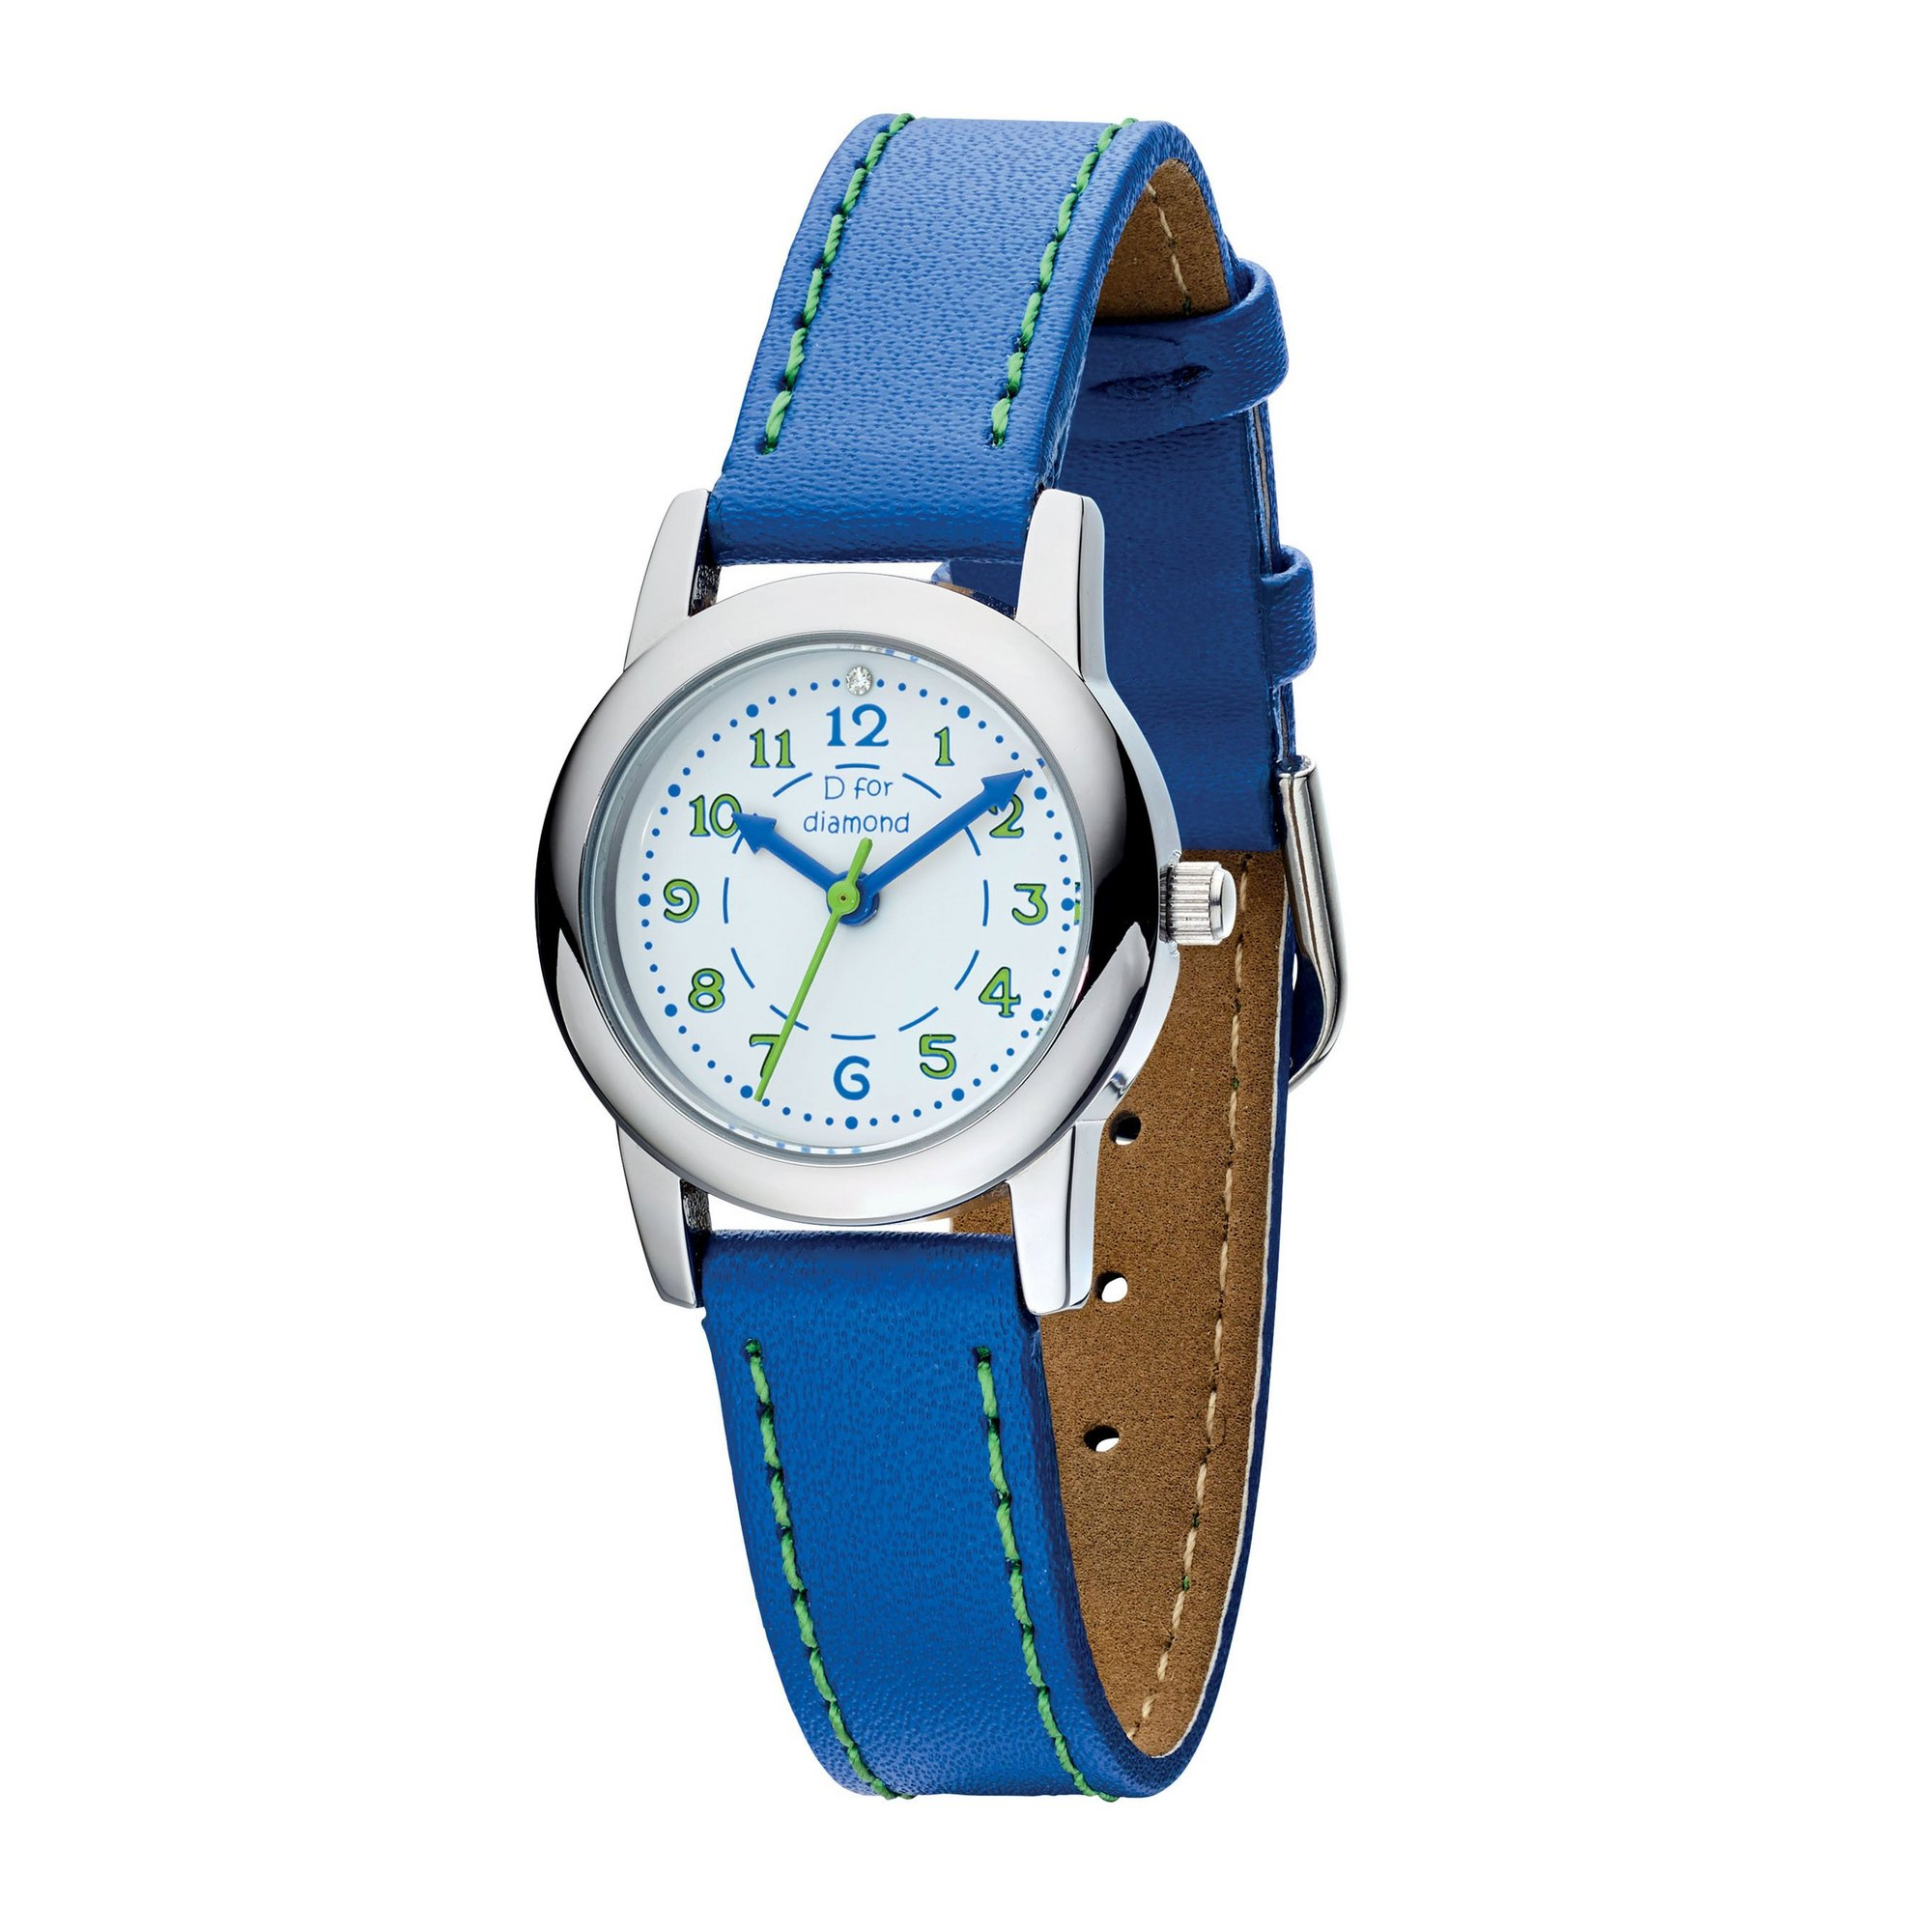 Image of D For Diamond Boys Watch